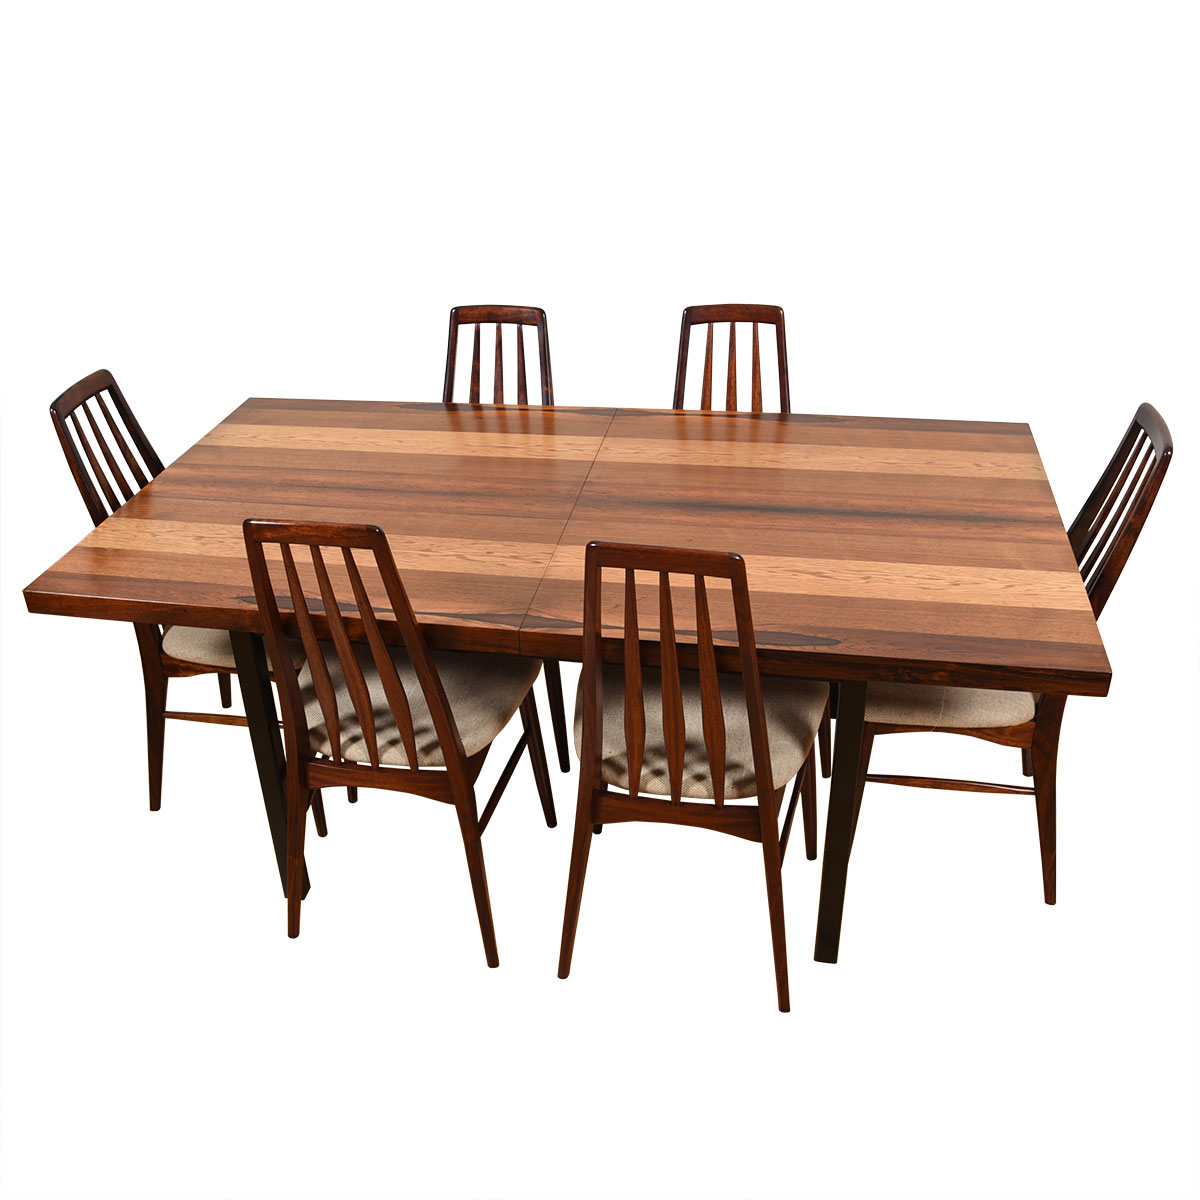 Milo Baughman for Dillingham — American Modernist Expanding Dining Table